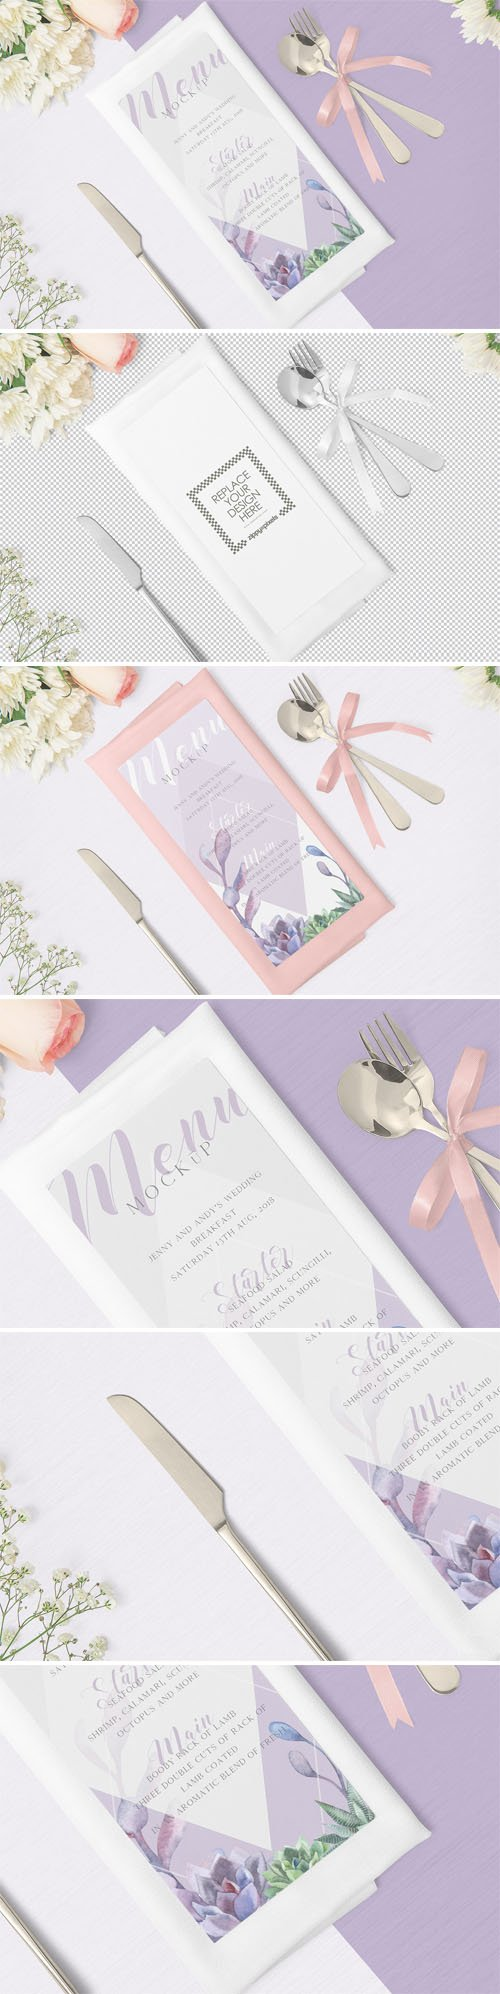 Gorgeous Restaurant Menu PSD Mockup